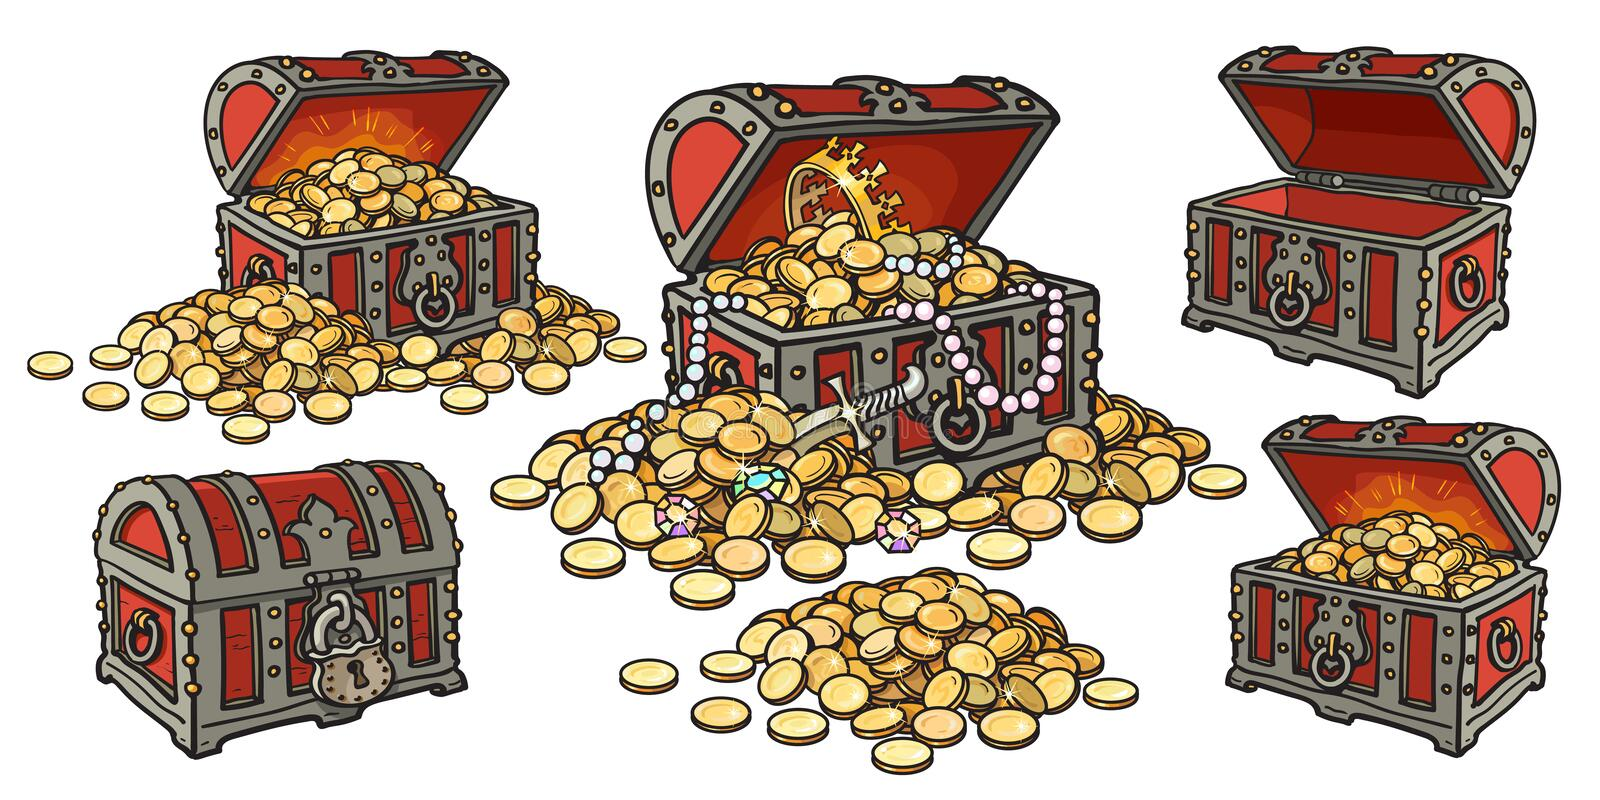 Cartoon set of pirate treasure chests open and closed, empty and full of gold coins and jewelry. Pile of golden money vector illustration